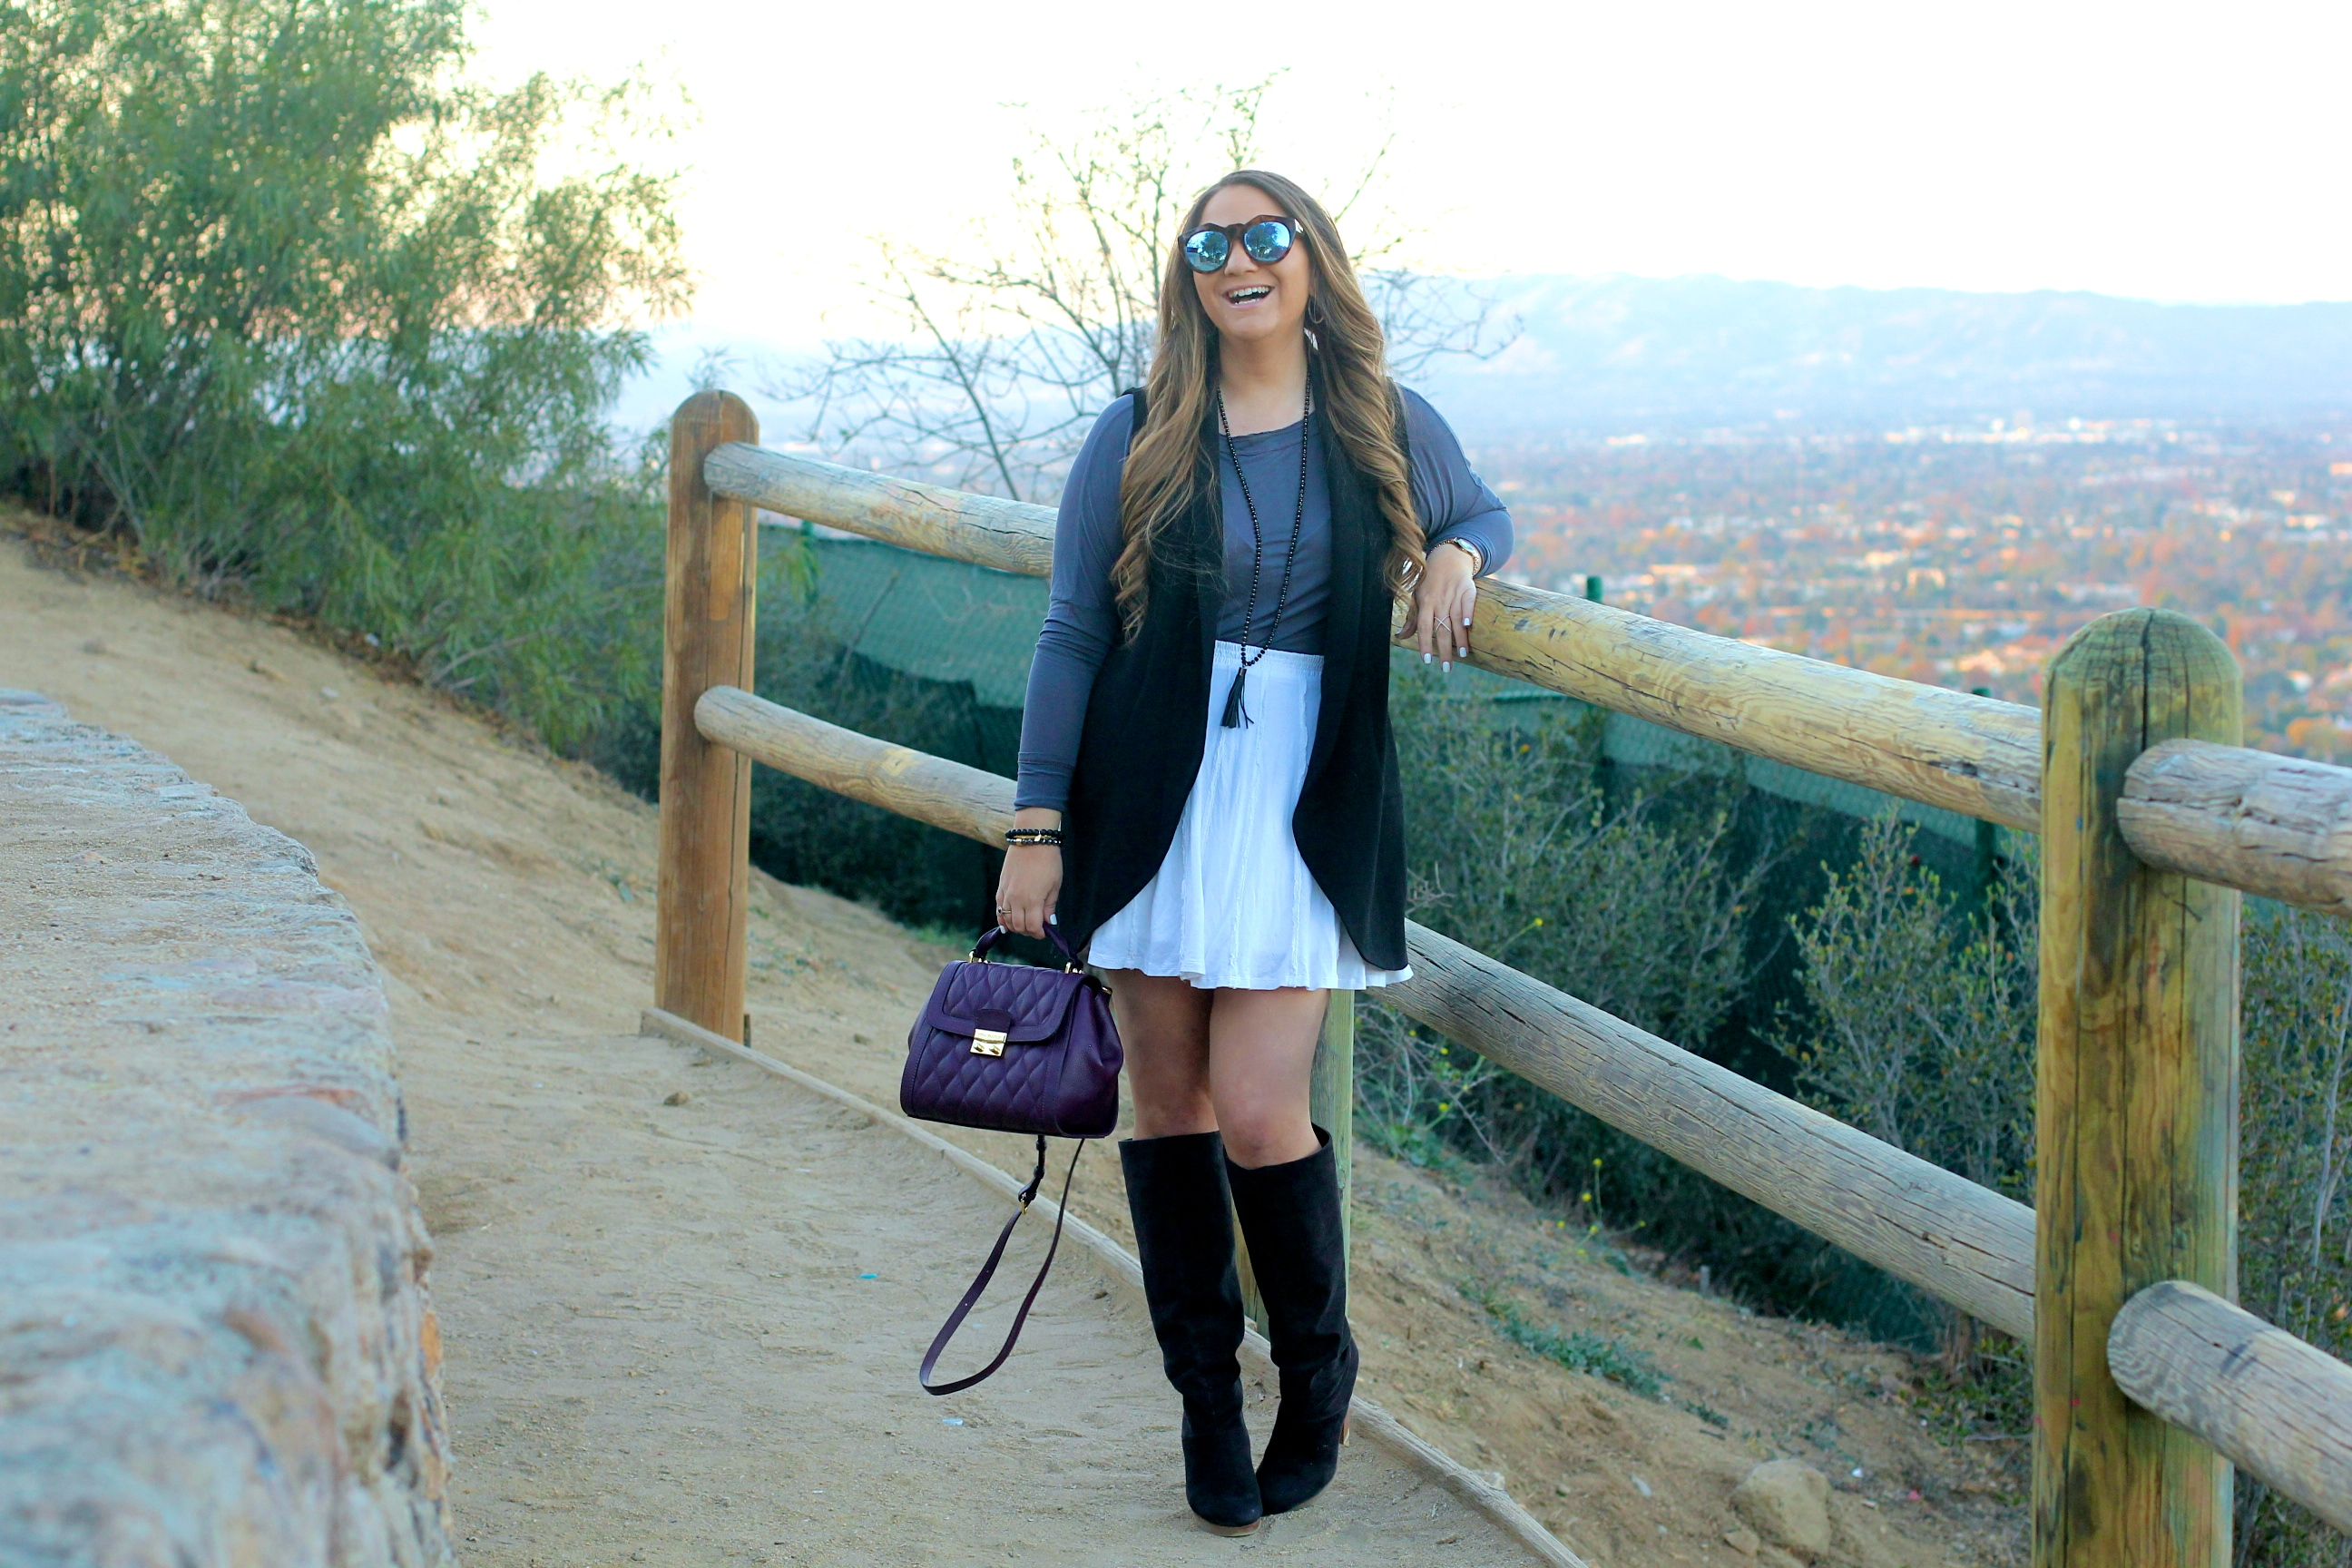 missyonmadison, melissa tierney, white skater skirt, white skirt, sea of pearls, sea of pearls tee, gray long sleeve tee, black sleeveless blazer, lush blazer, nordstrom rack, black over the knee boots, black suede heeled boots, vera bradley, vera bradley purple satchel, purple satchel, le specs sunnies, sunglasses shop, le spec tortoise sunglasses, marrin costello, black beaded tassel necklace, black beaded bracelet, brunette hair, winter style, la blogger, la style, long sleeve tee, sleeveless vest, hollywood hills, fashion blogger,